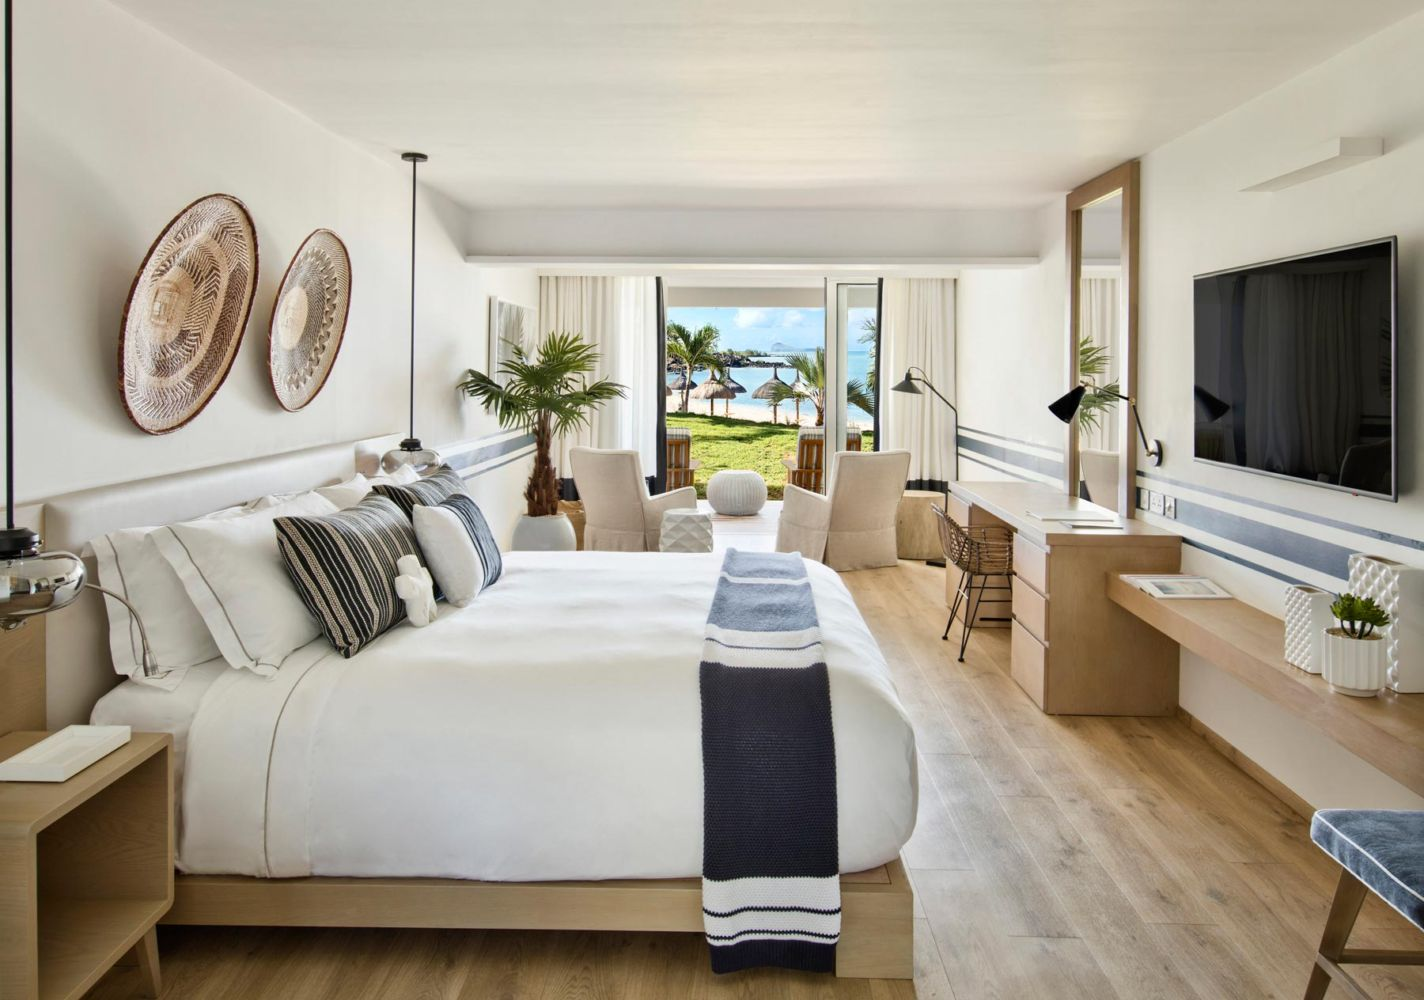 hotel-mauritius-design-decor-luxury1